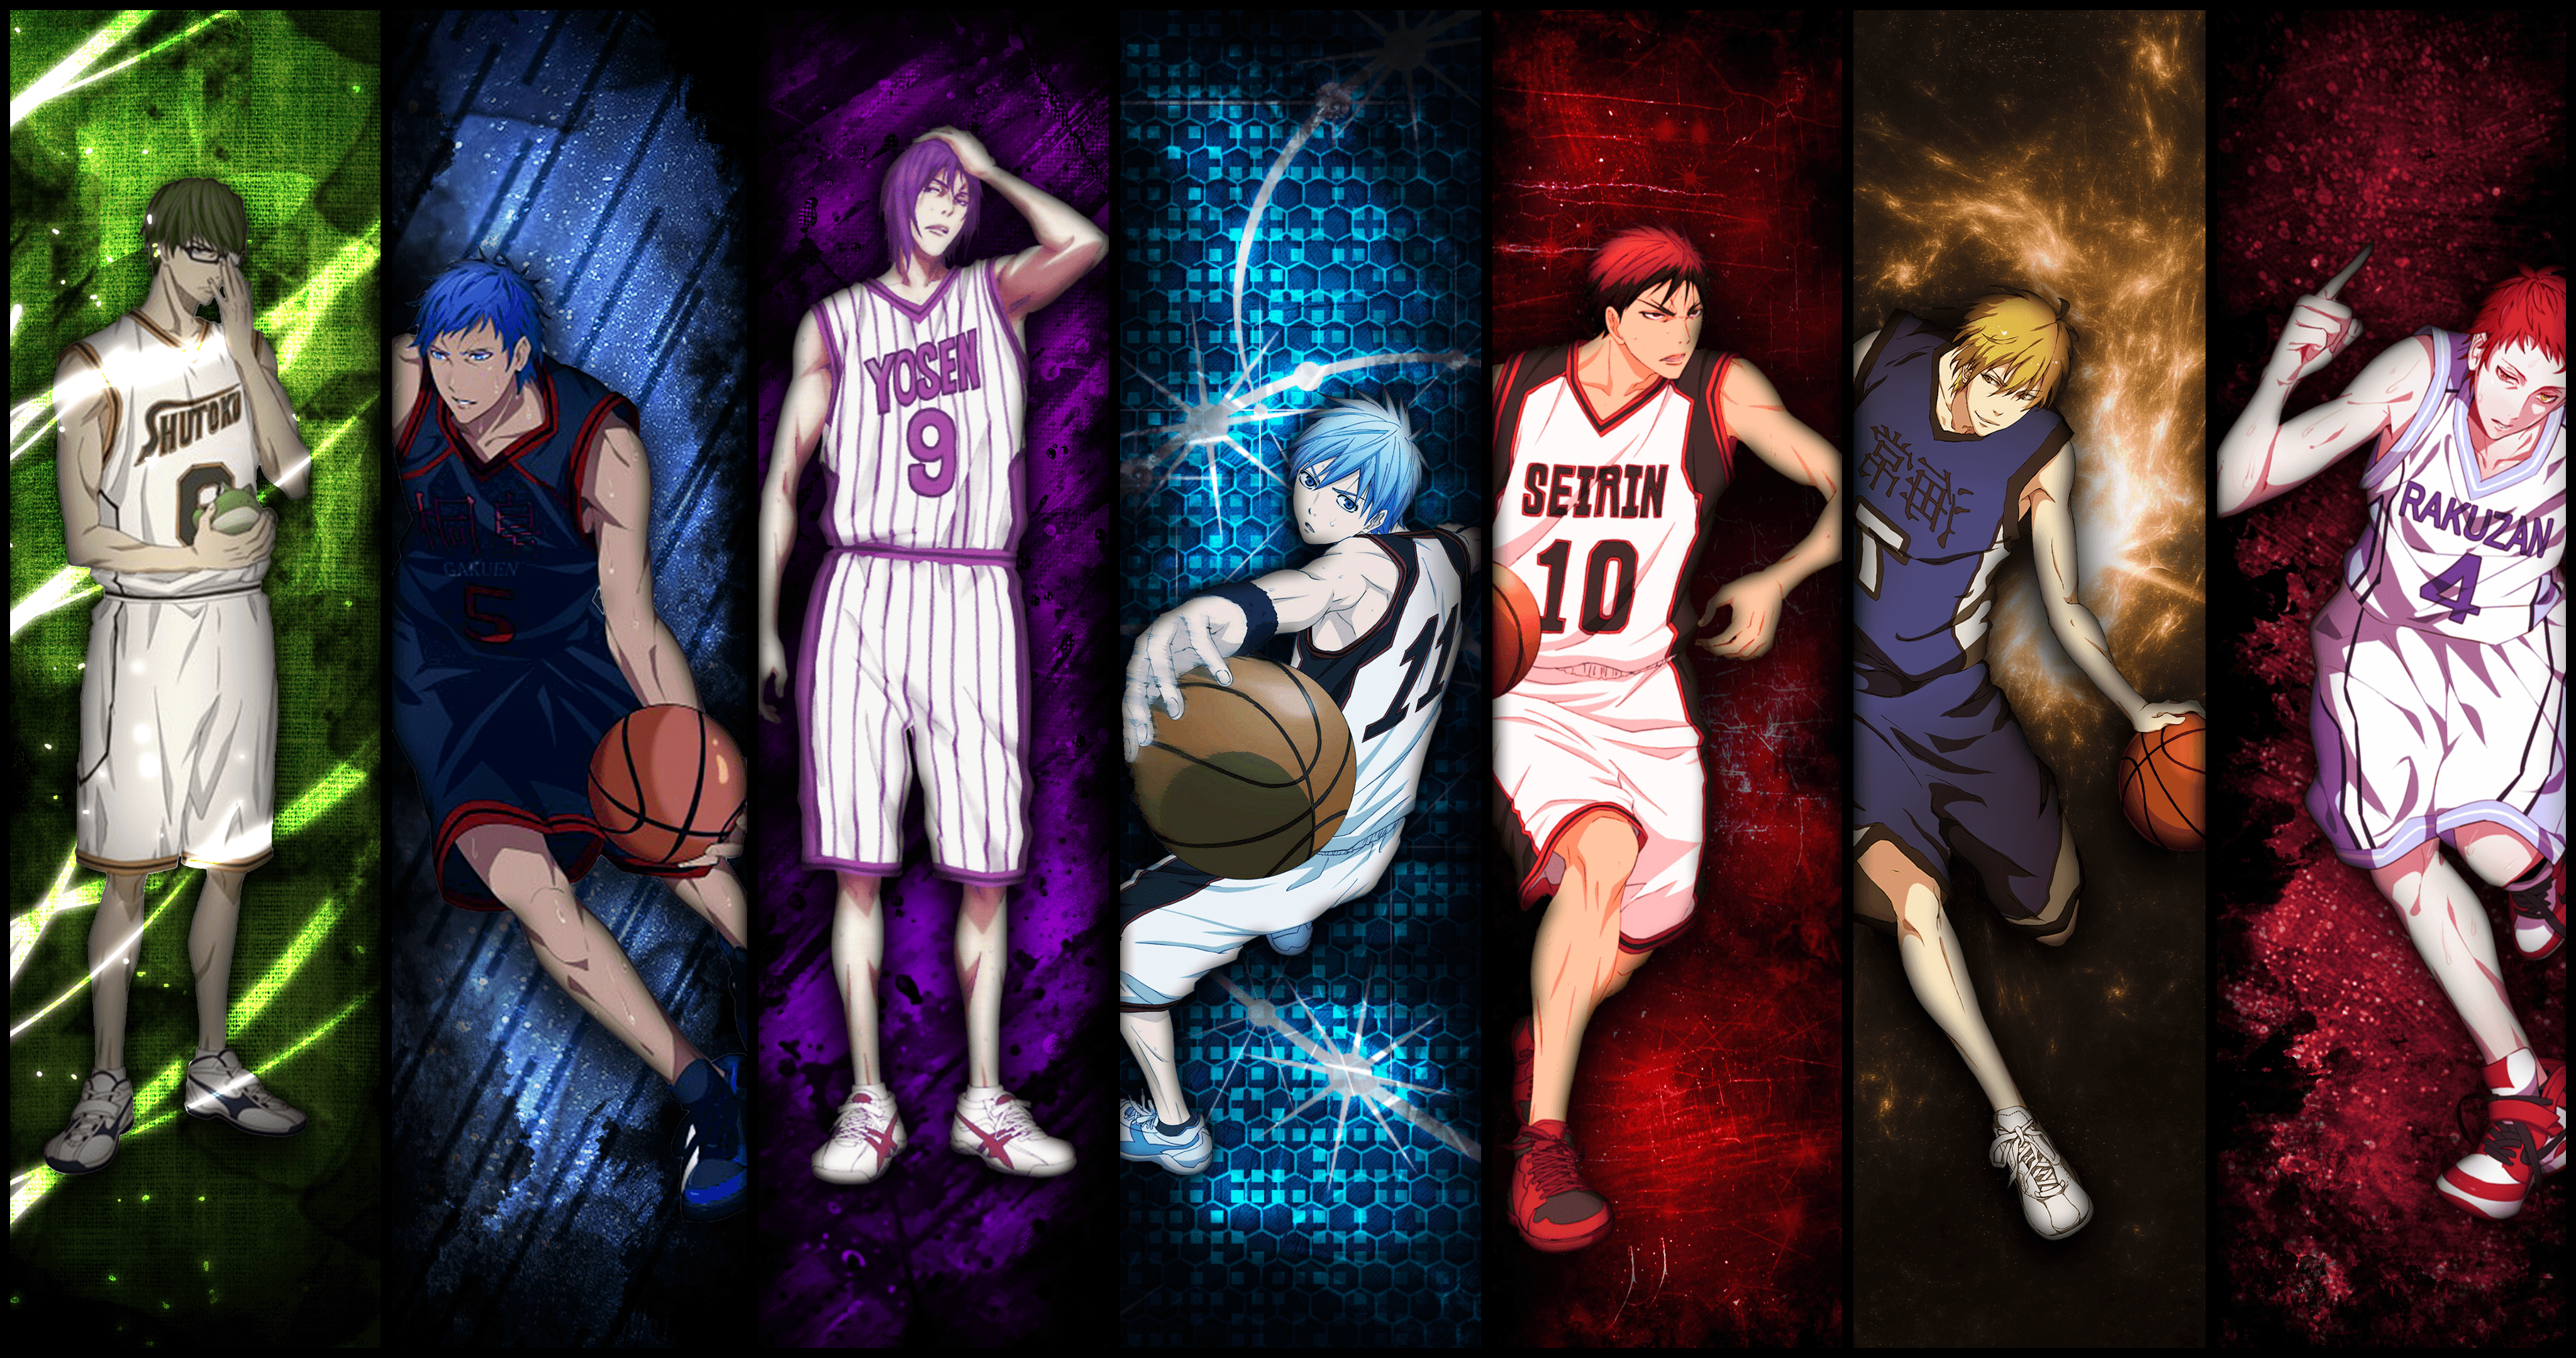 kuroko no basket wallpaper hd - Tag | Download HD Wallpaper - Page ...